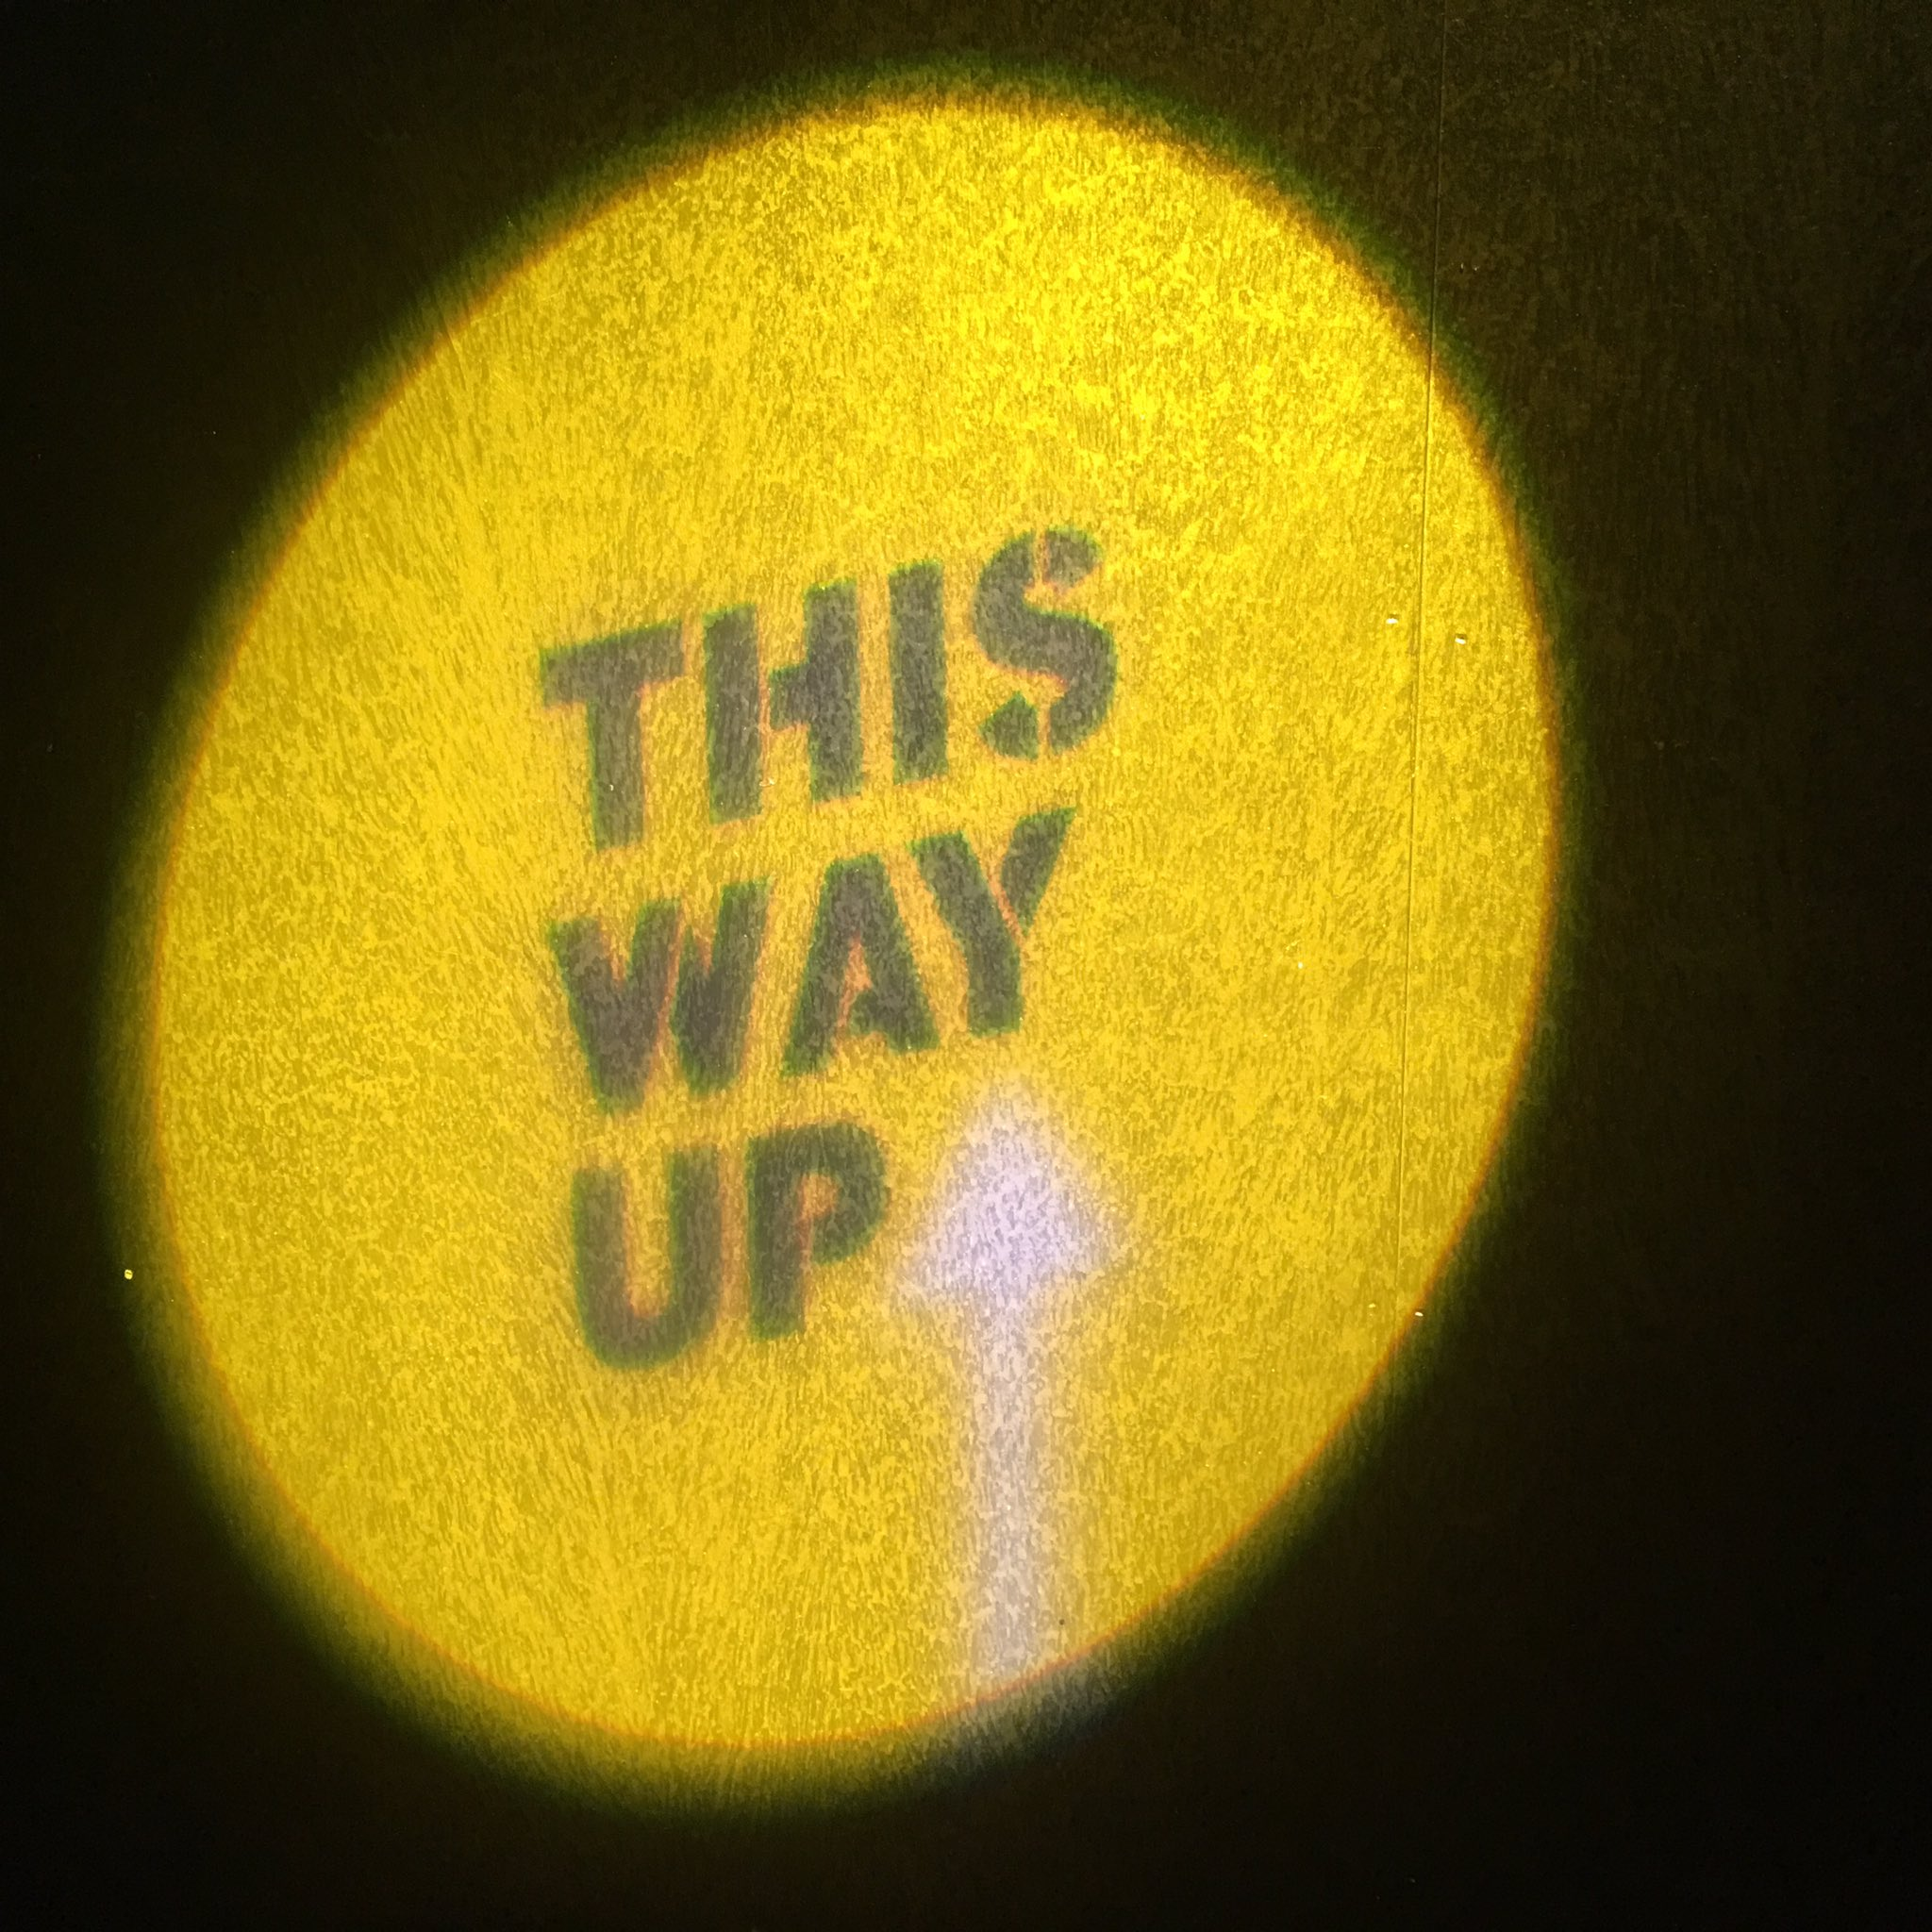 I'm coming out of DJ retirement for 1 night only for @thiswayupcon drinks at Glasgow Art School #ThisWayUp16 https://t.co/zaMABL1TfT